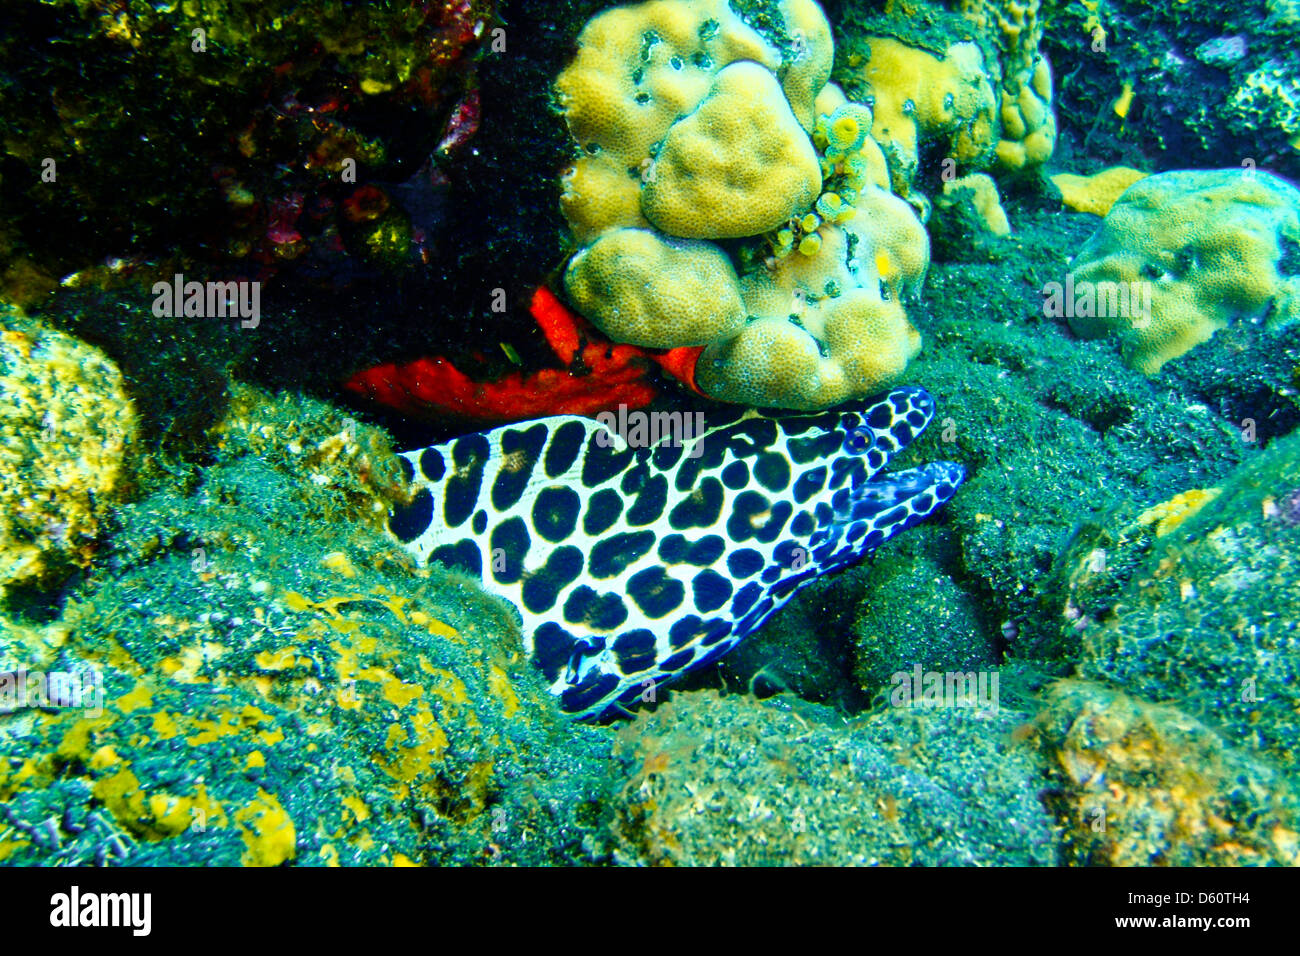 pictures of wild animals under the sea, Indonesia Stock Photo ...